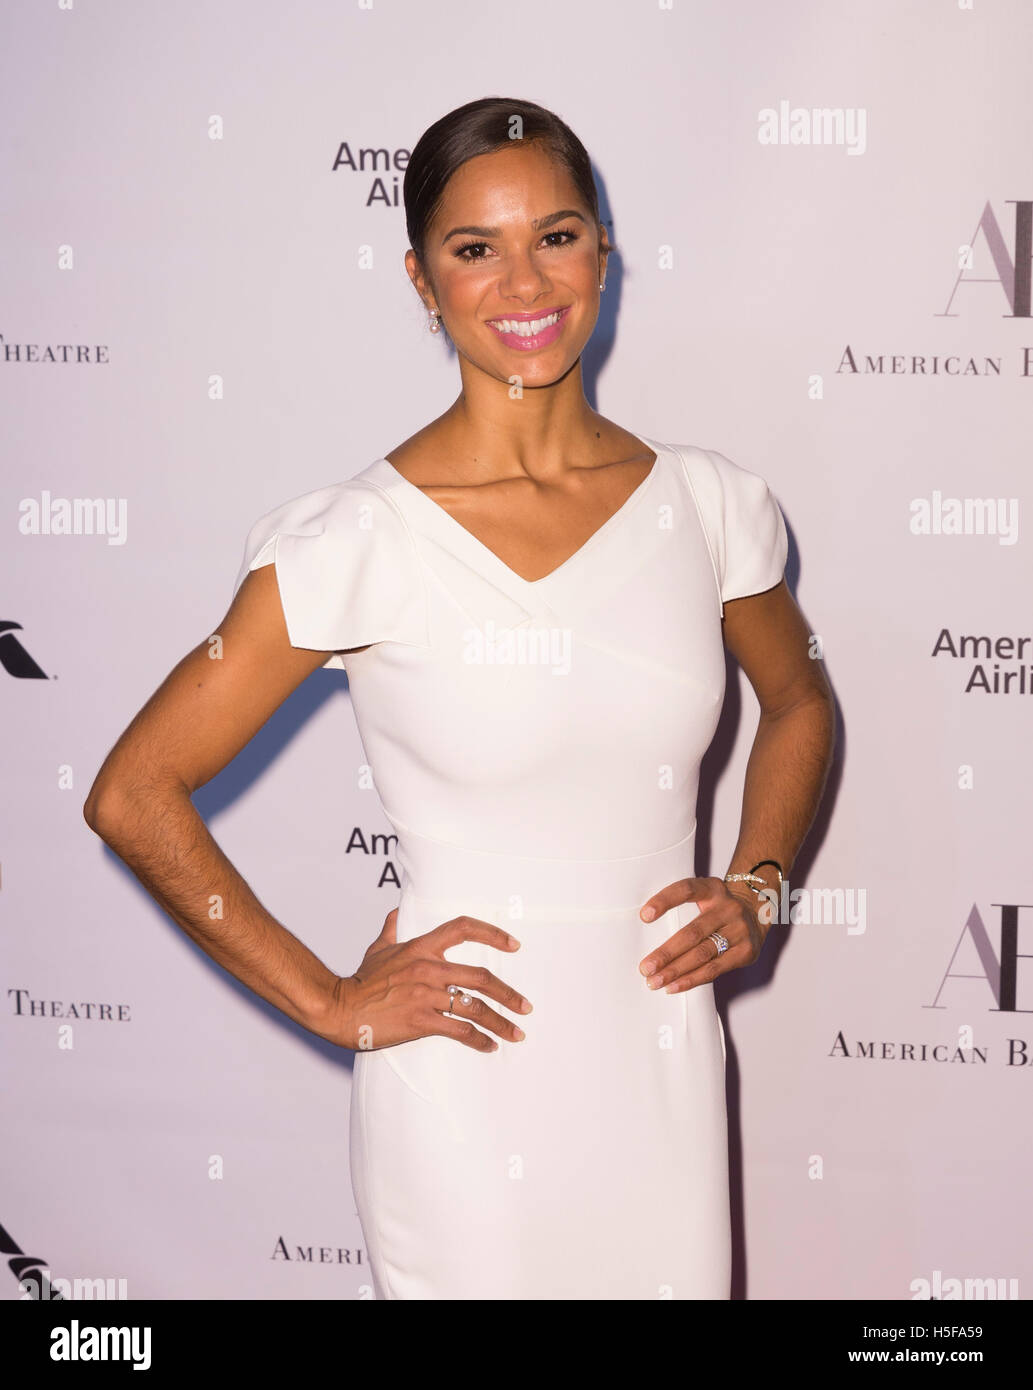 New York, USA. 20th October, 2016. 2016: Misty Copeland attends American Ballet Theatre 2016 Fall Gala at Lincoln - Stock Image